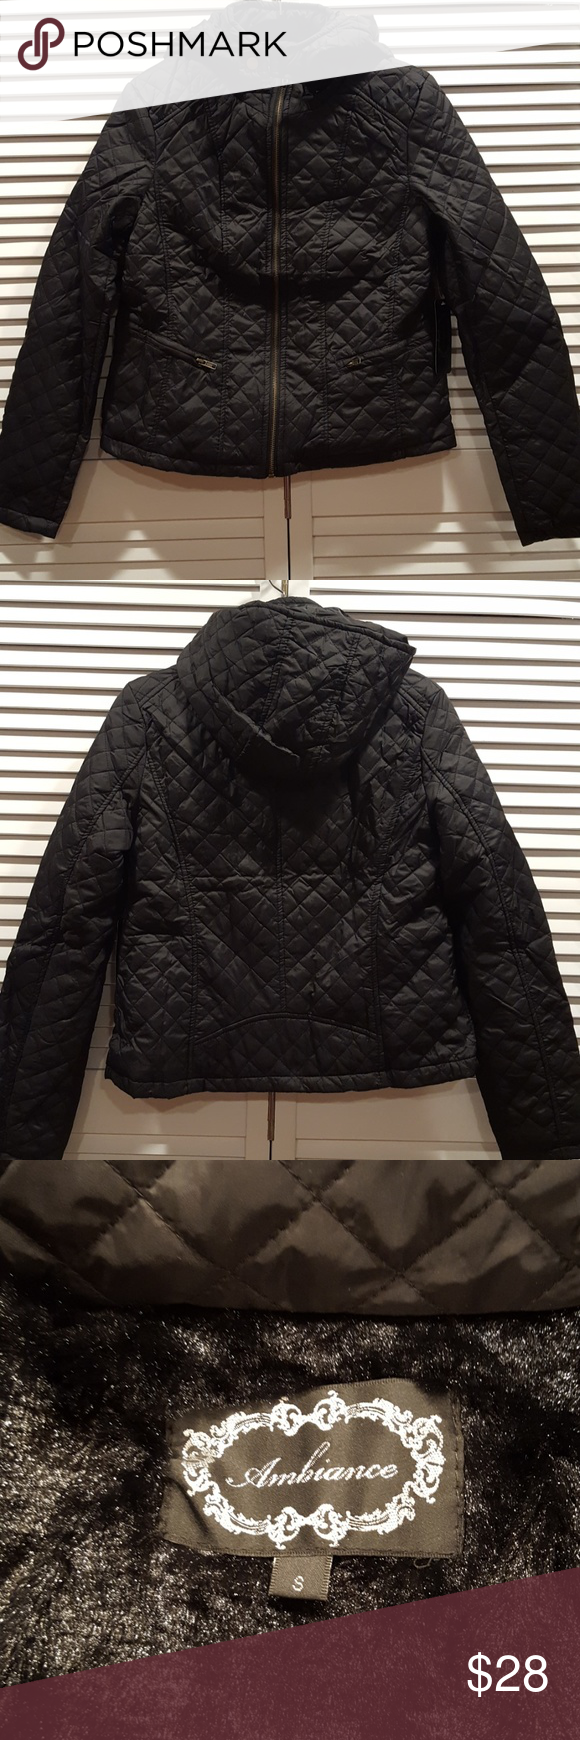 Ambiance Black Quilted Puffer Jacket Size S New With Tags Ambiance Quilted Jacket Zip Up Has Removable Quilted Puffer Jacket Clothes Design Quilted Jacket [ 1740 x 580 Pixel ]